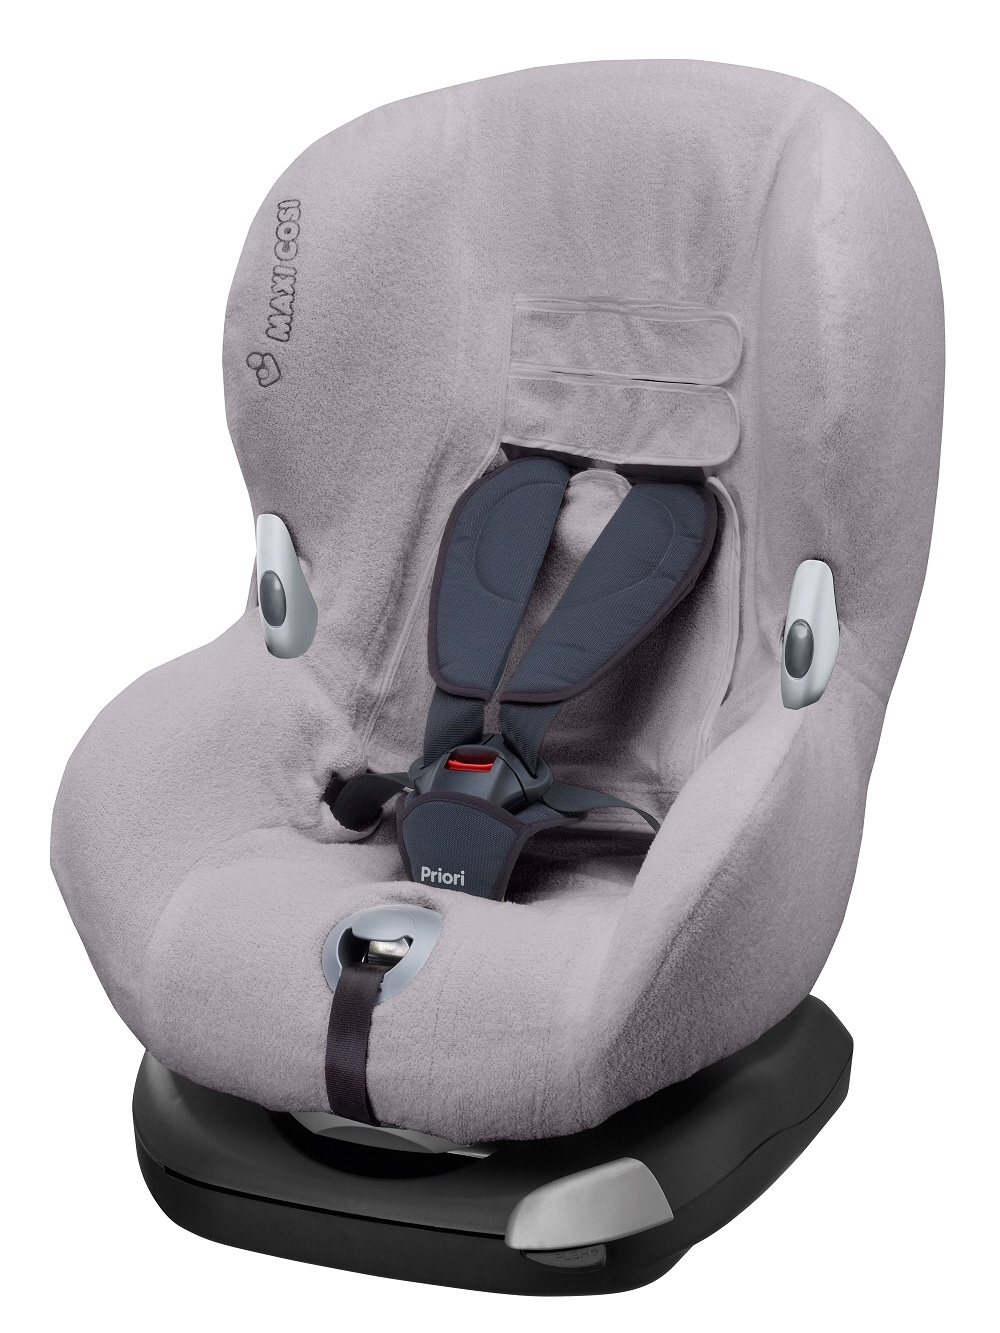 maxi cosi summer cover for child car seat priori xp buy at kidsroom car seats car seat. Black Bedroom Furniture Sets. Home Design Ideas